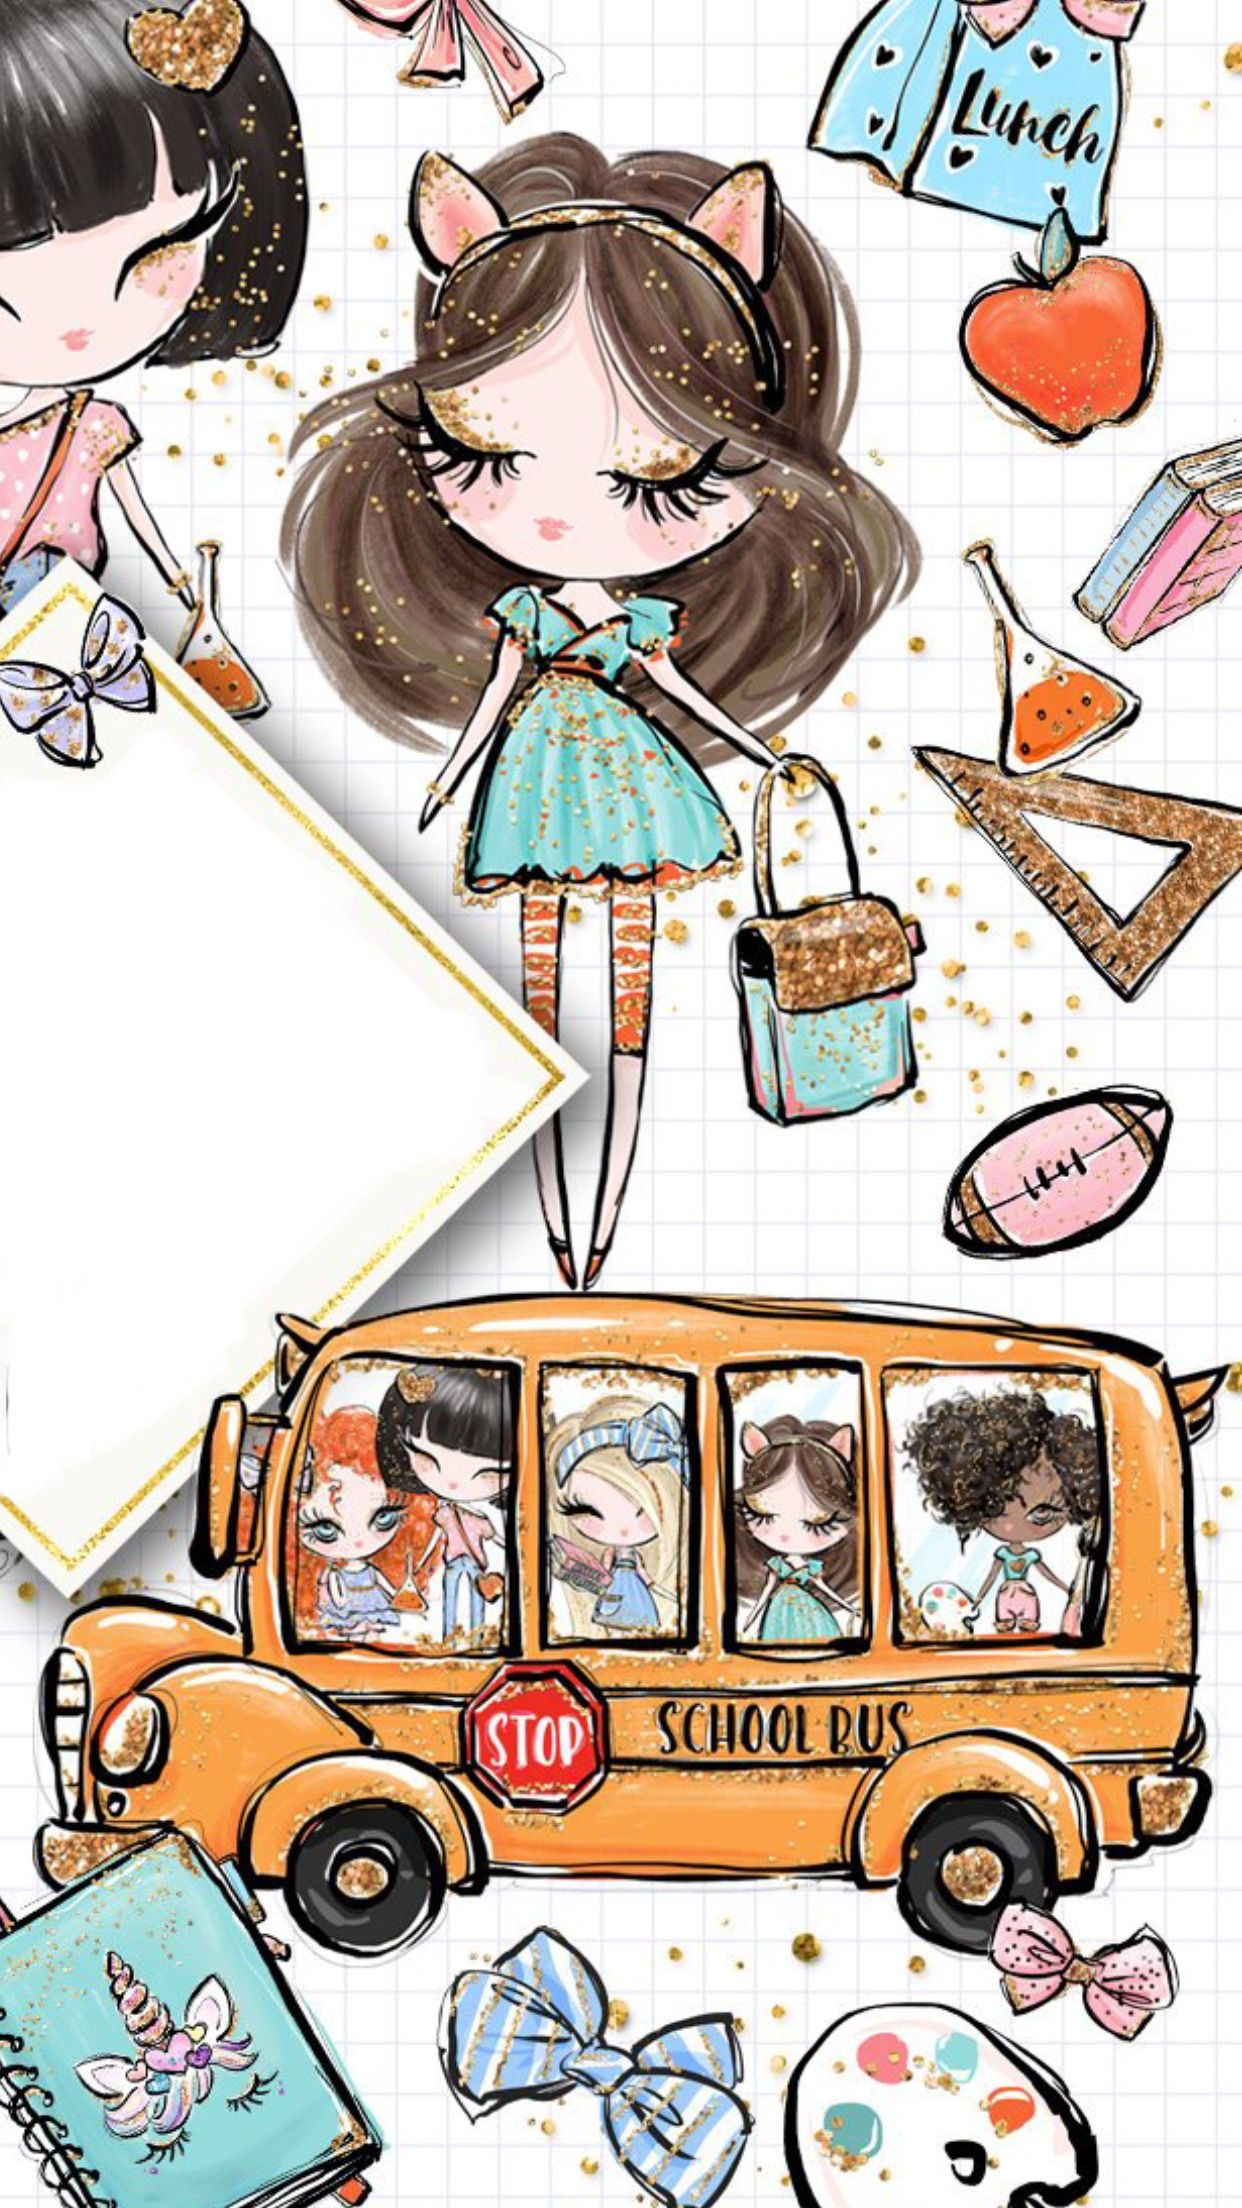 School Bus With Images Cute Drawings